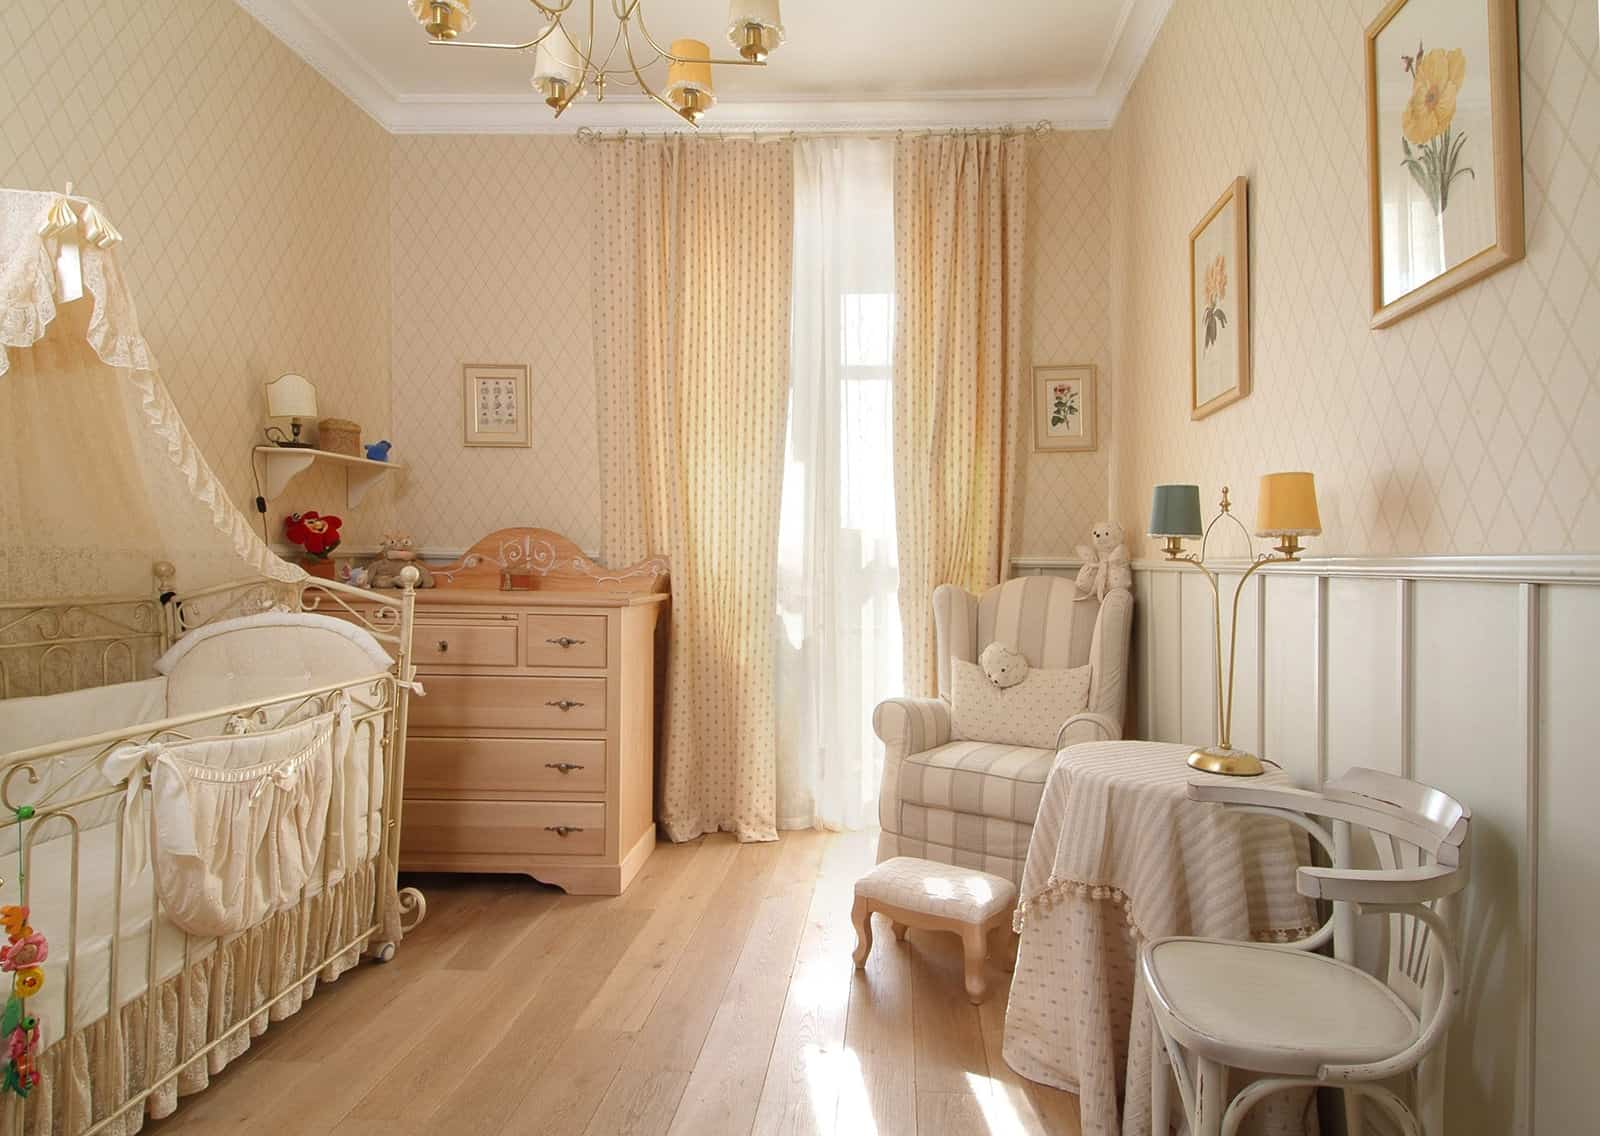 Kids room ideas french country decor house interior for Country decor